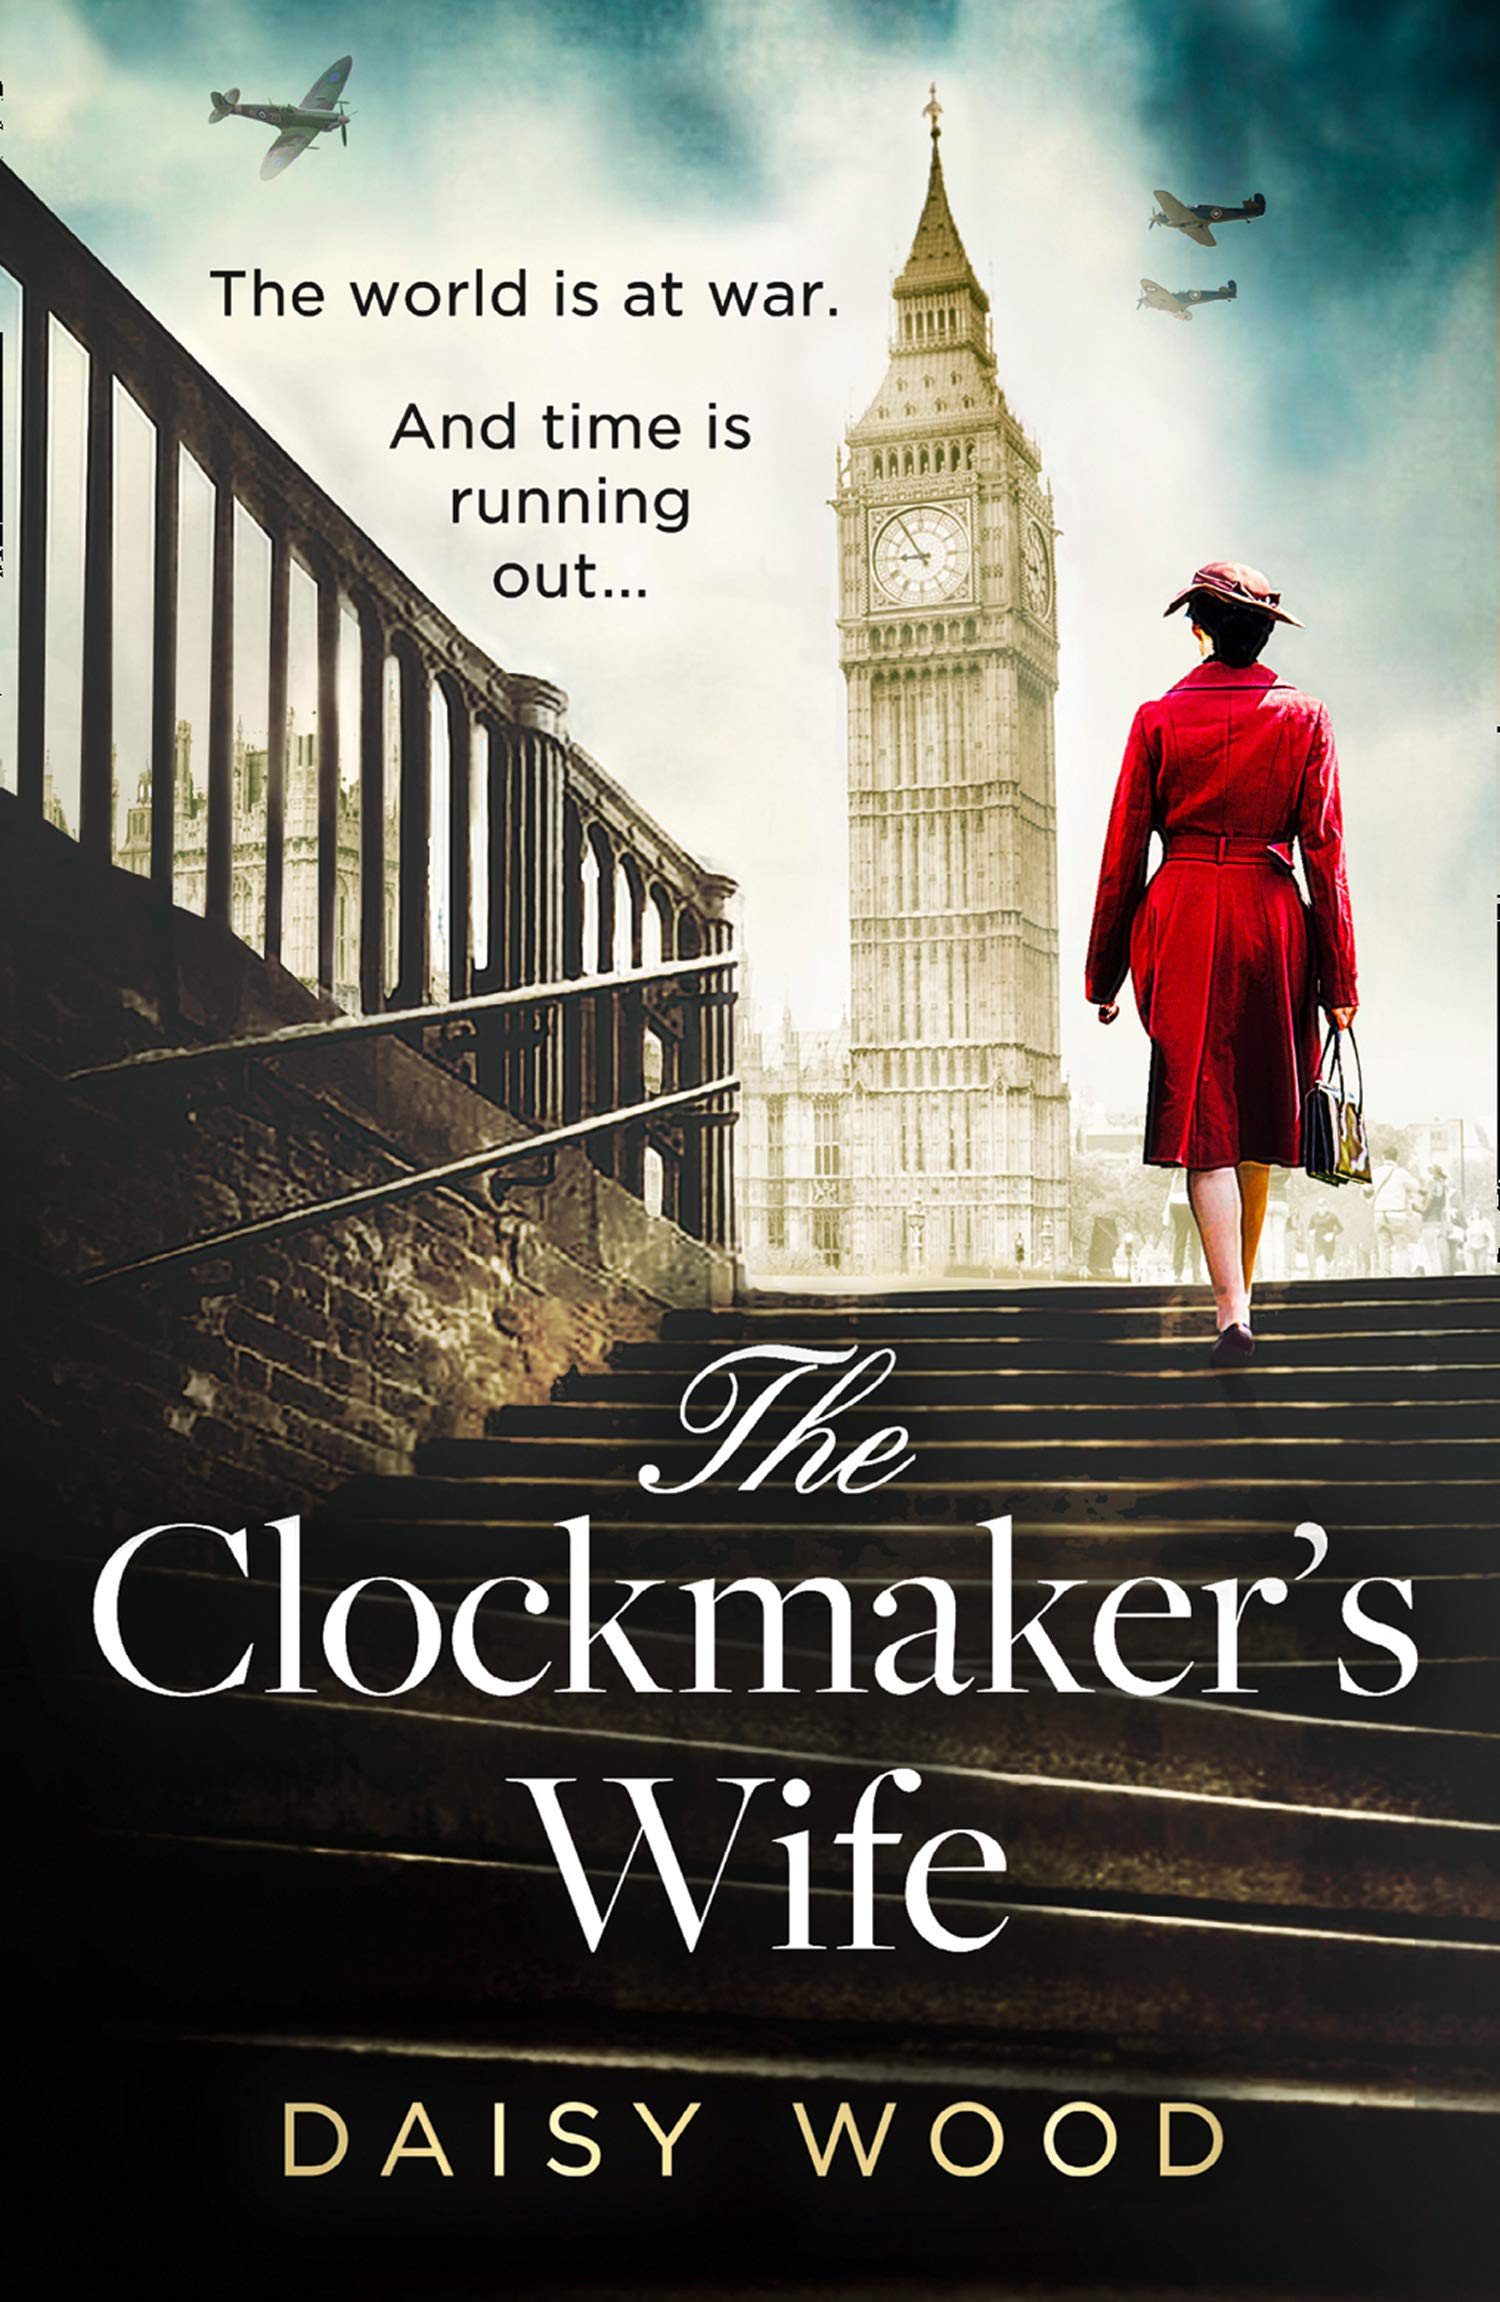 The Clockmaker's Wife: An new voice in WWII historical fiction for 2021